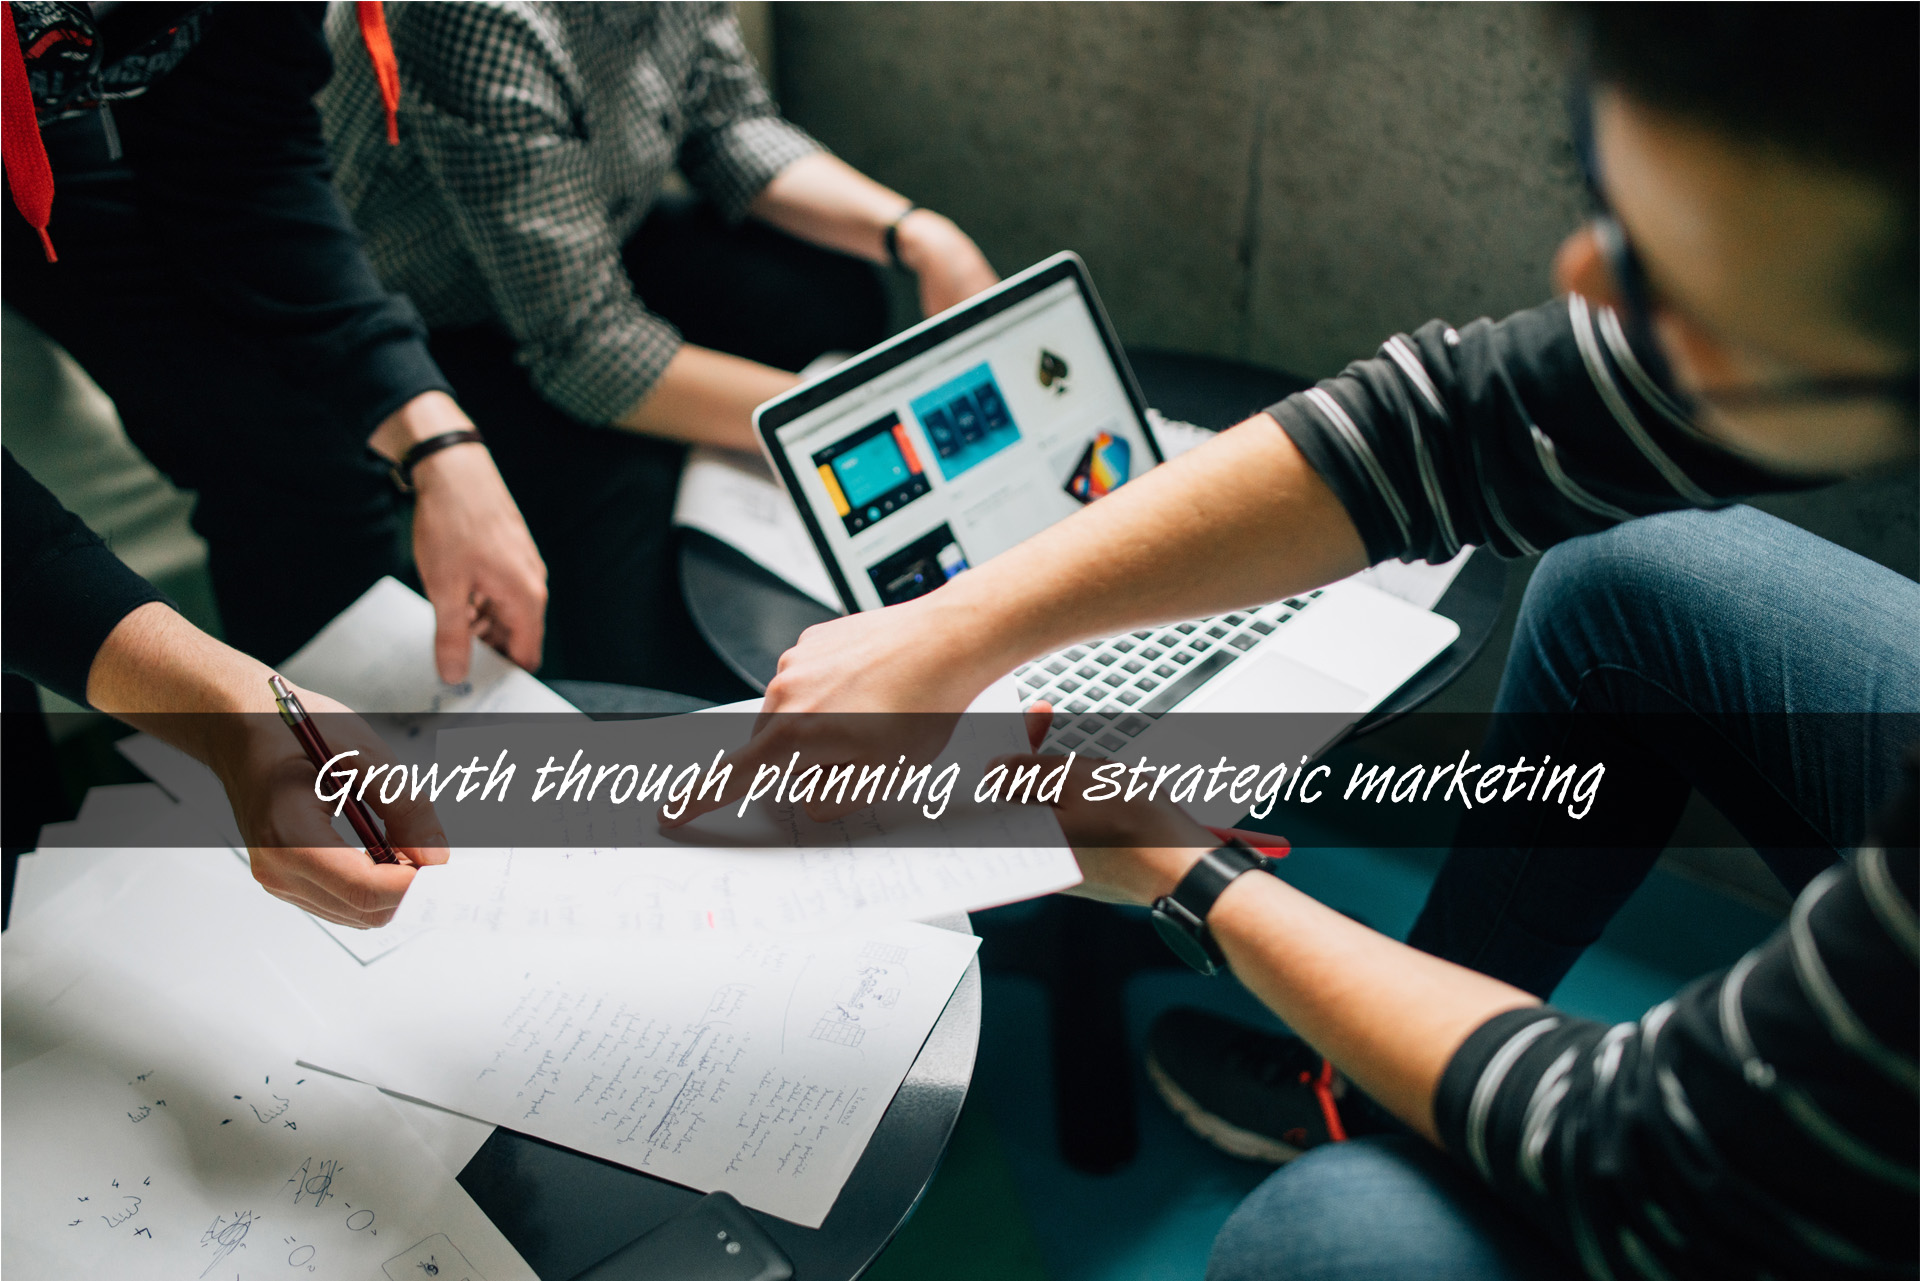 planning and strategic marketing